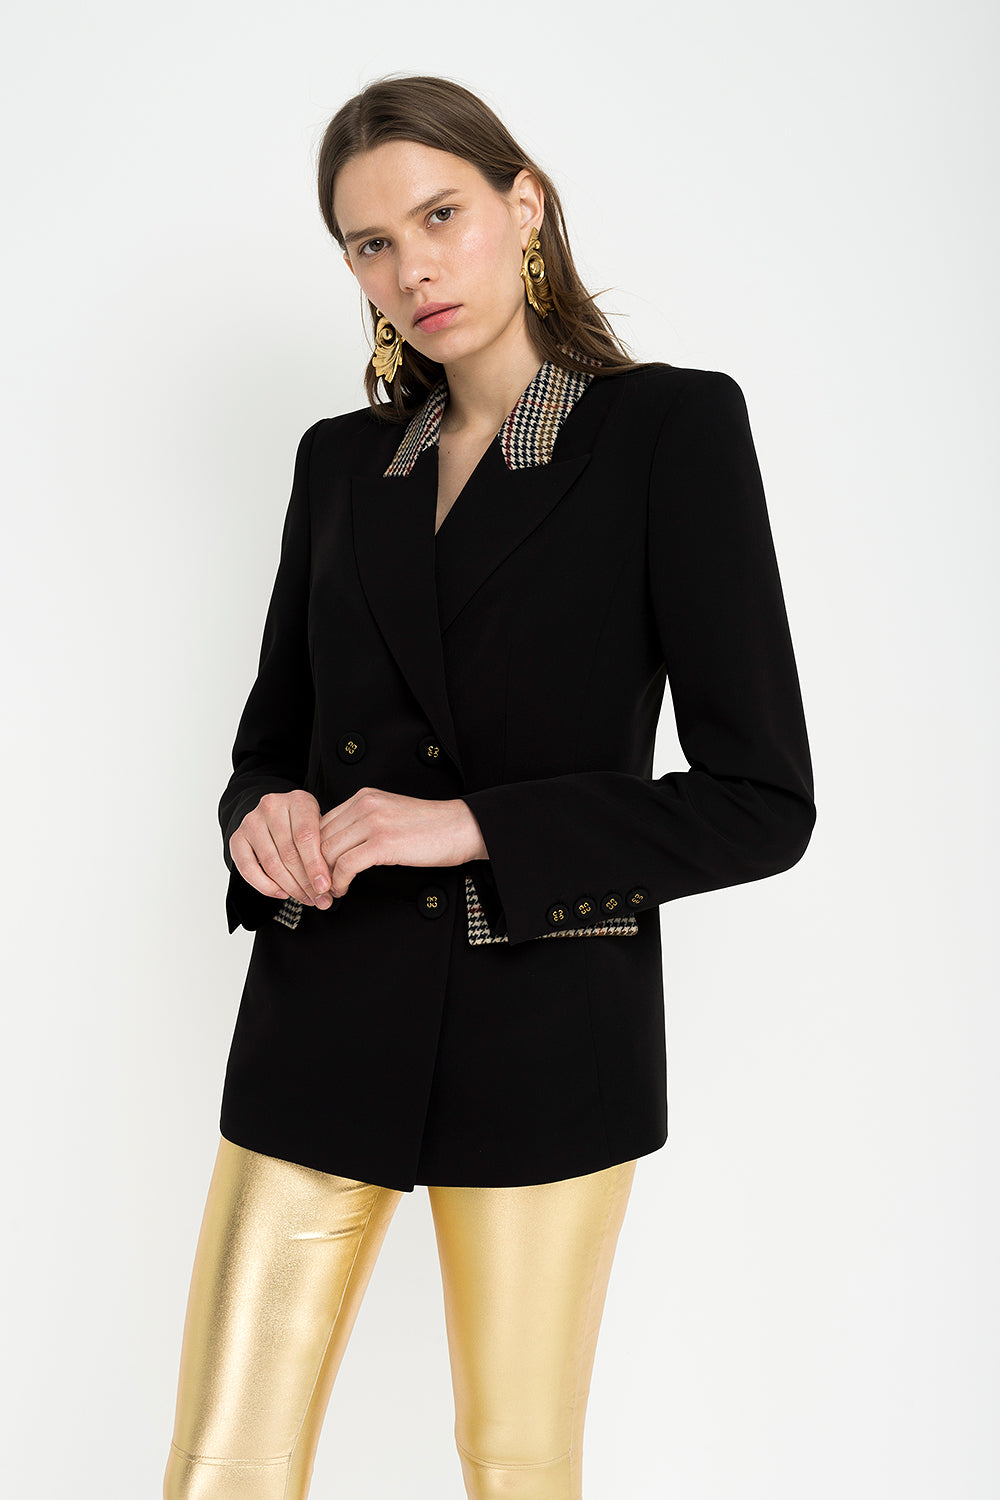 Black jacket with wool inserts